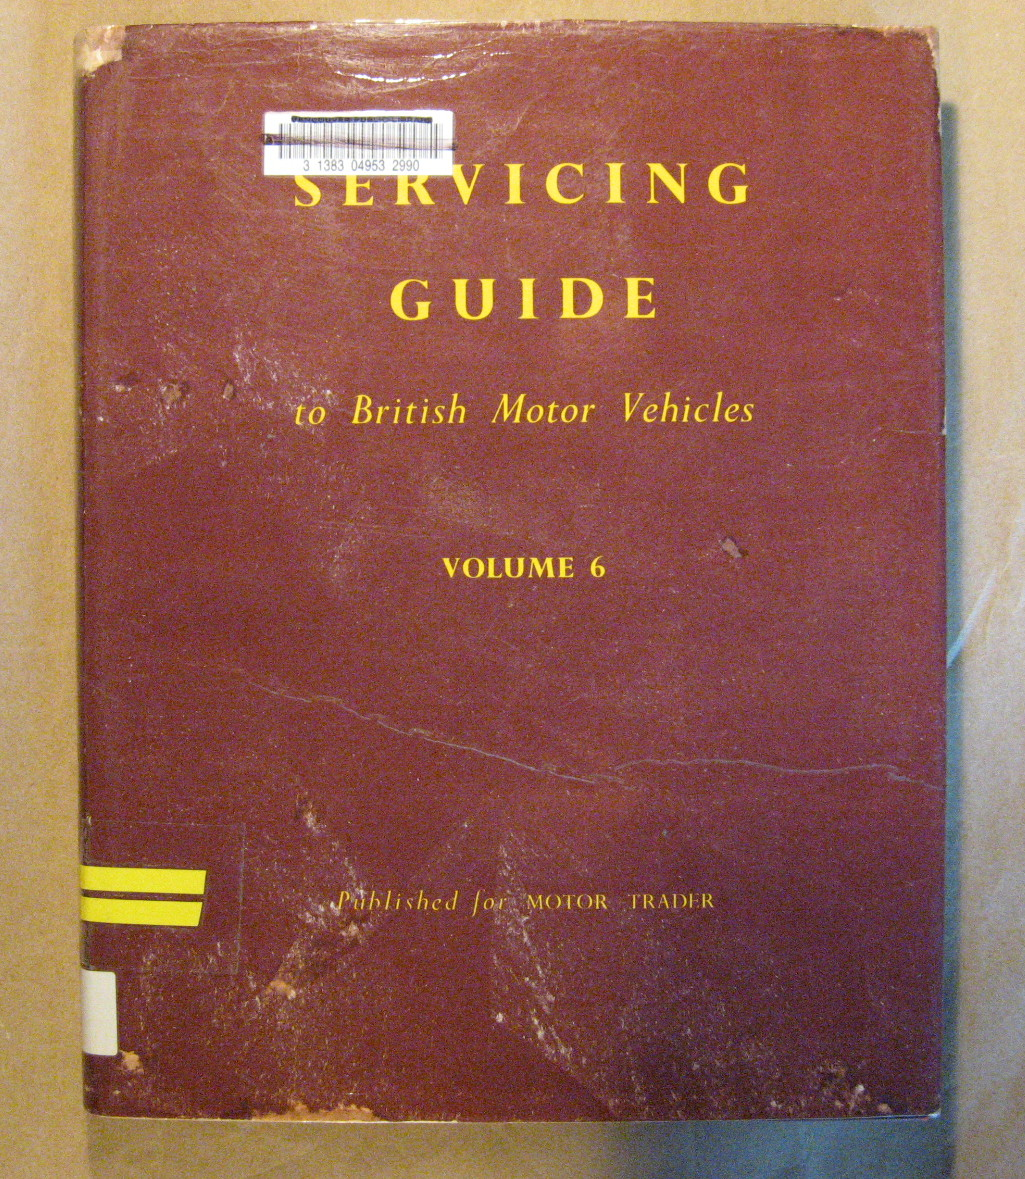 Image for Servicing Guide to British Motor Vehicles Vol. 6: Cars, Commercial Vehicles, Diesel Engines and Components